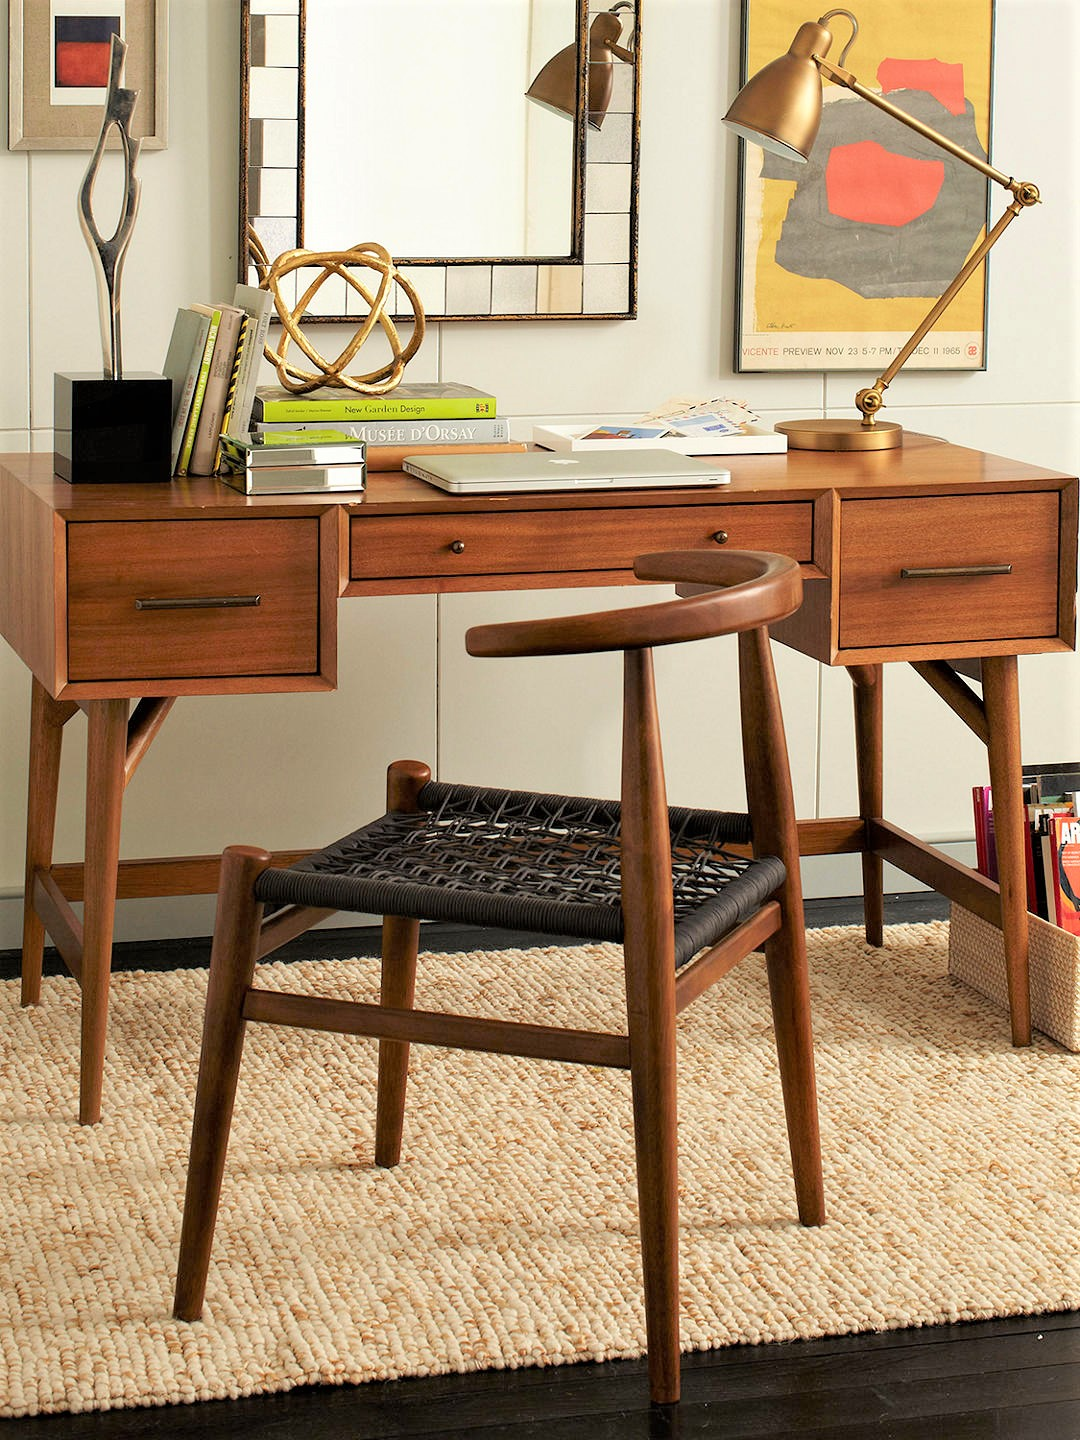 Image of: West Elm Acorn Desk Mad About Mid Century Modern